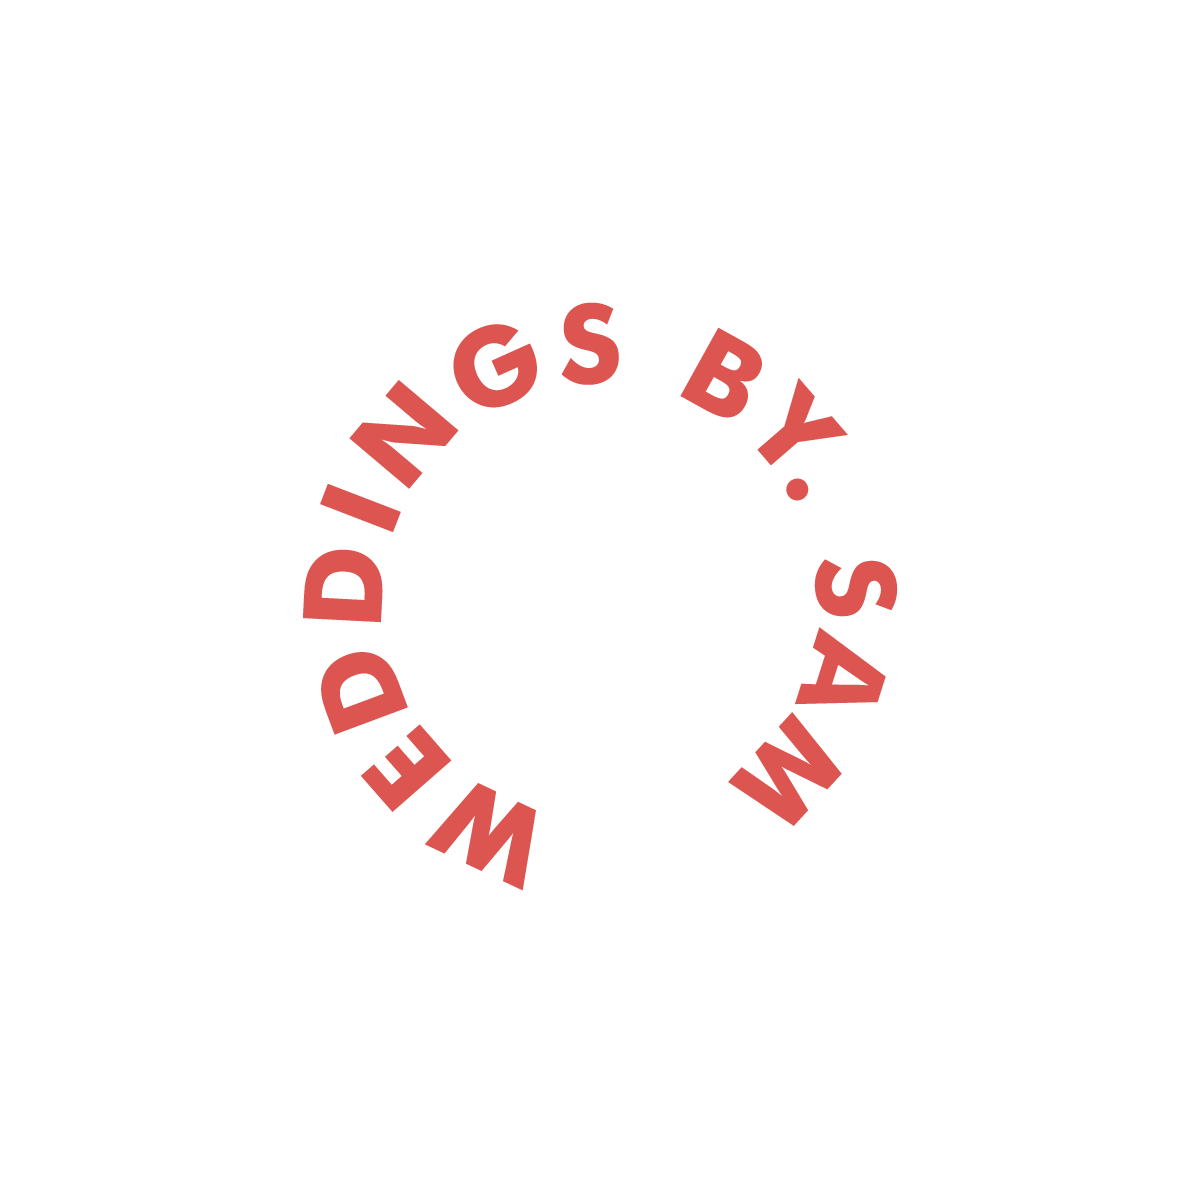 Weddings_by_sam_logo_transparent.png